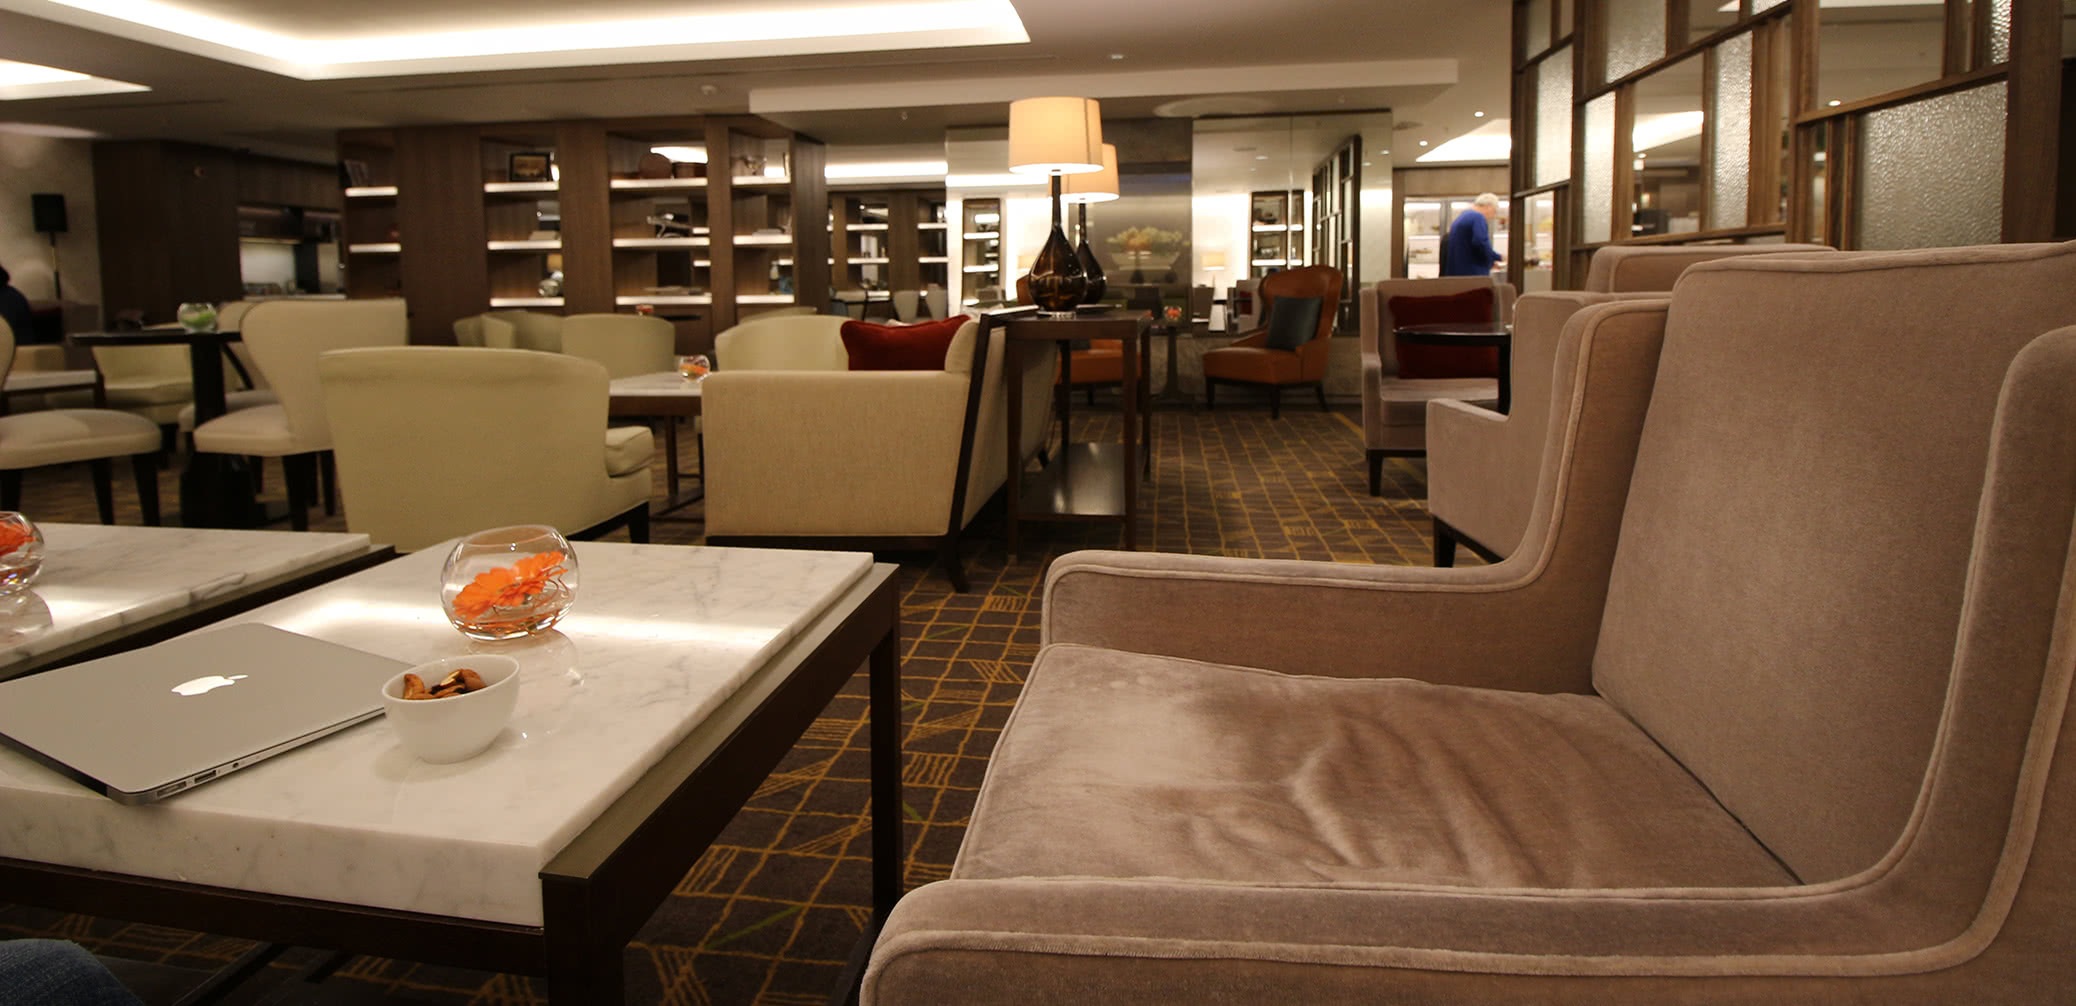 Best Marriott Bonvoy Hotels With Executive Lounges In New York